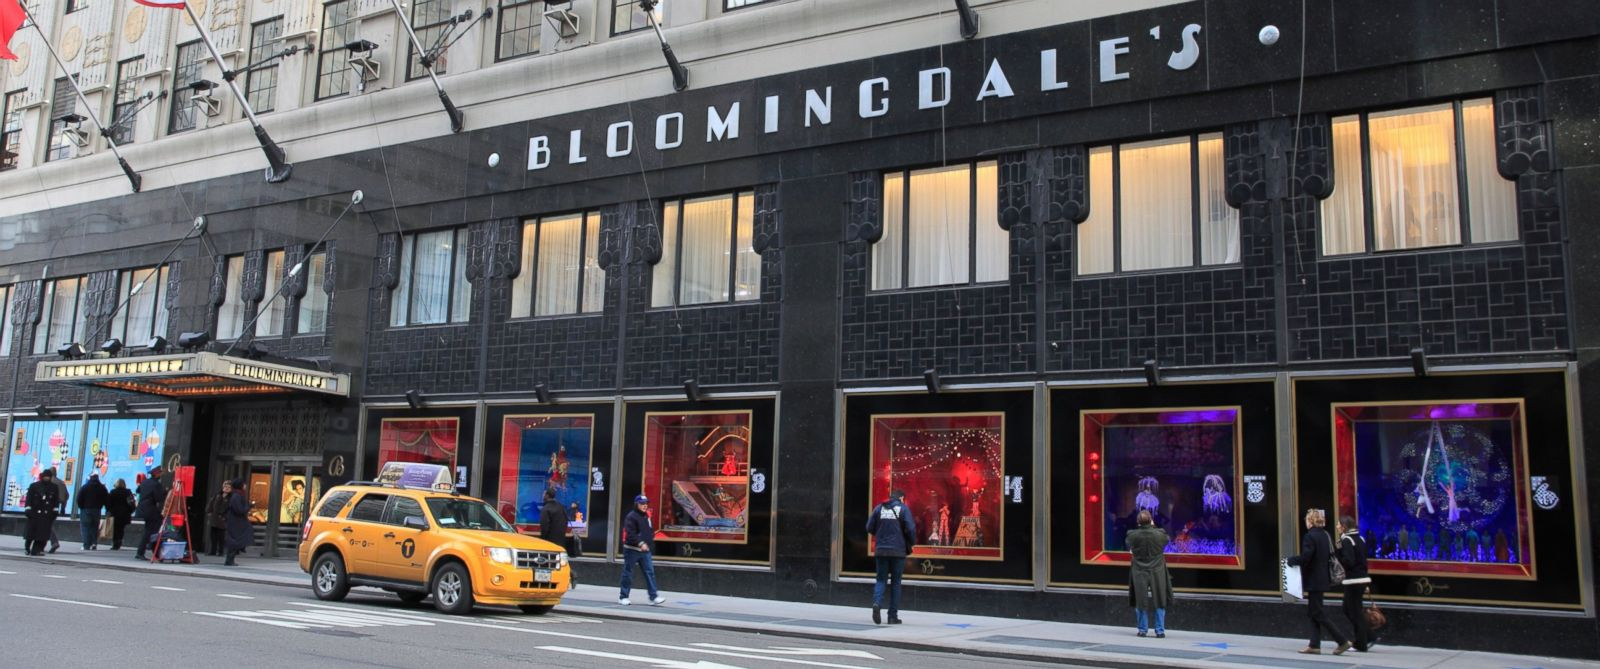 Find 5 listings related to Bloomingdales Department Store in Modesto on bushlibrary.ml See reviews, photos, directions, phone numbers and more for Bloomingdales Department Store locations in Modesto, CA. Start your search by typing in the business name below.